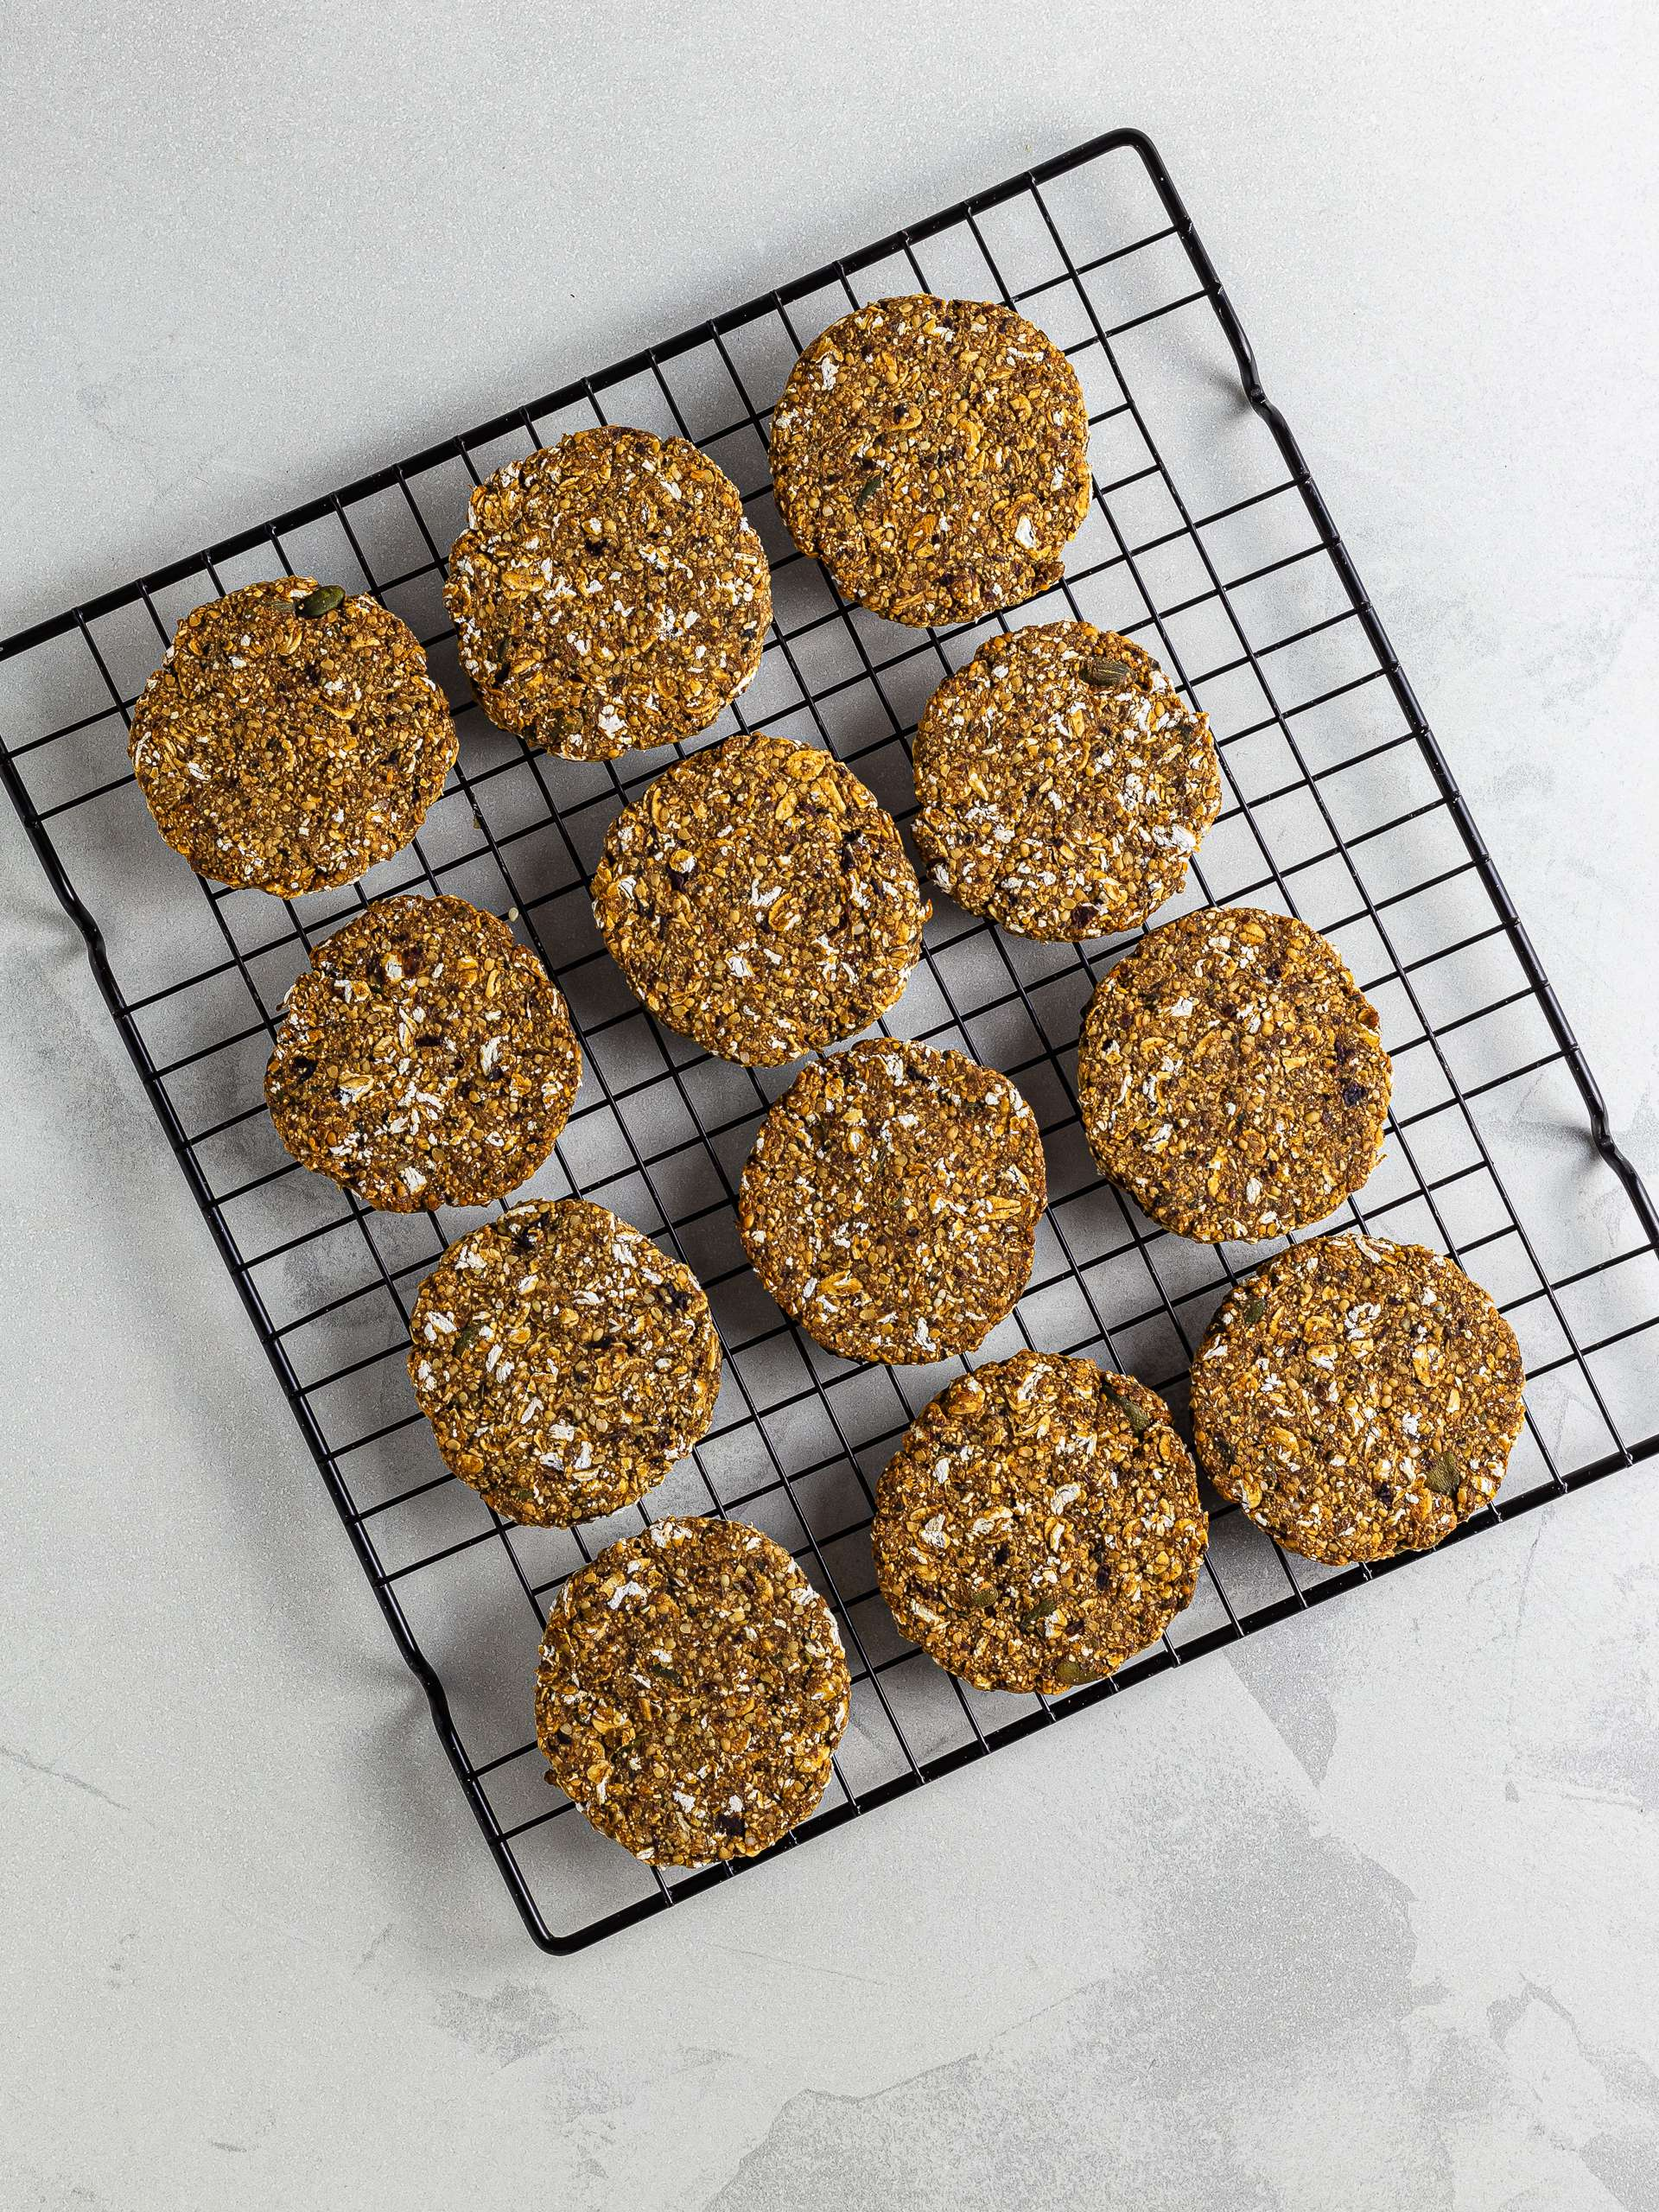 baked hemp cookies on a rack